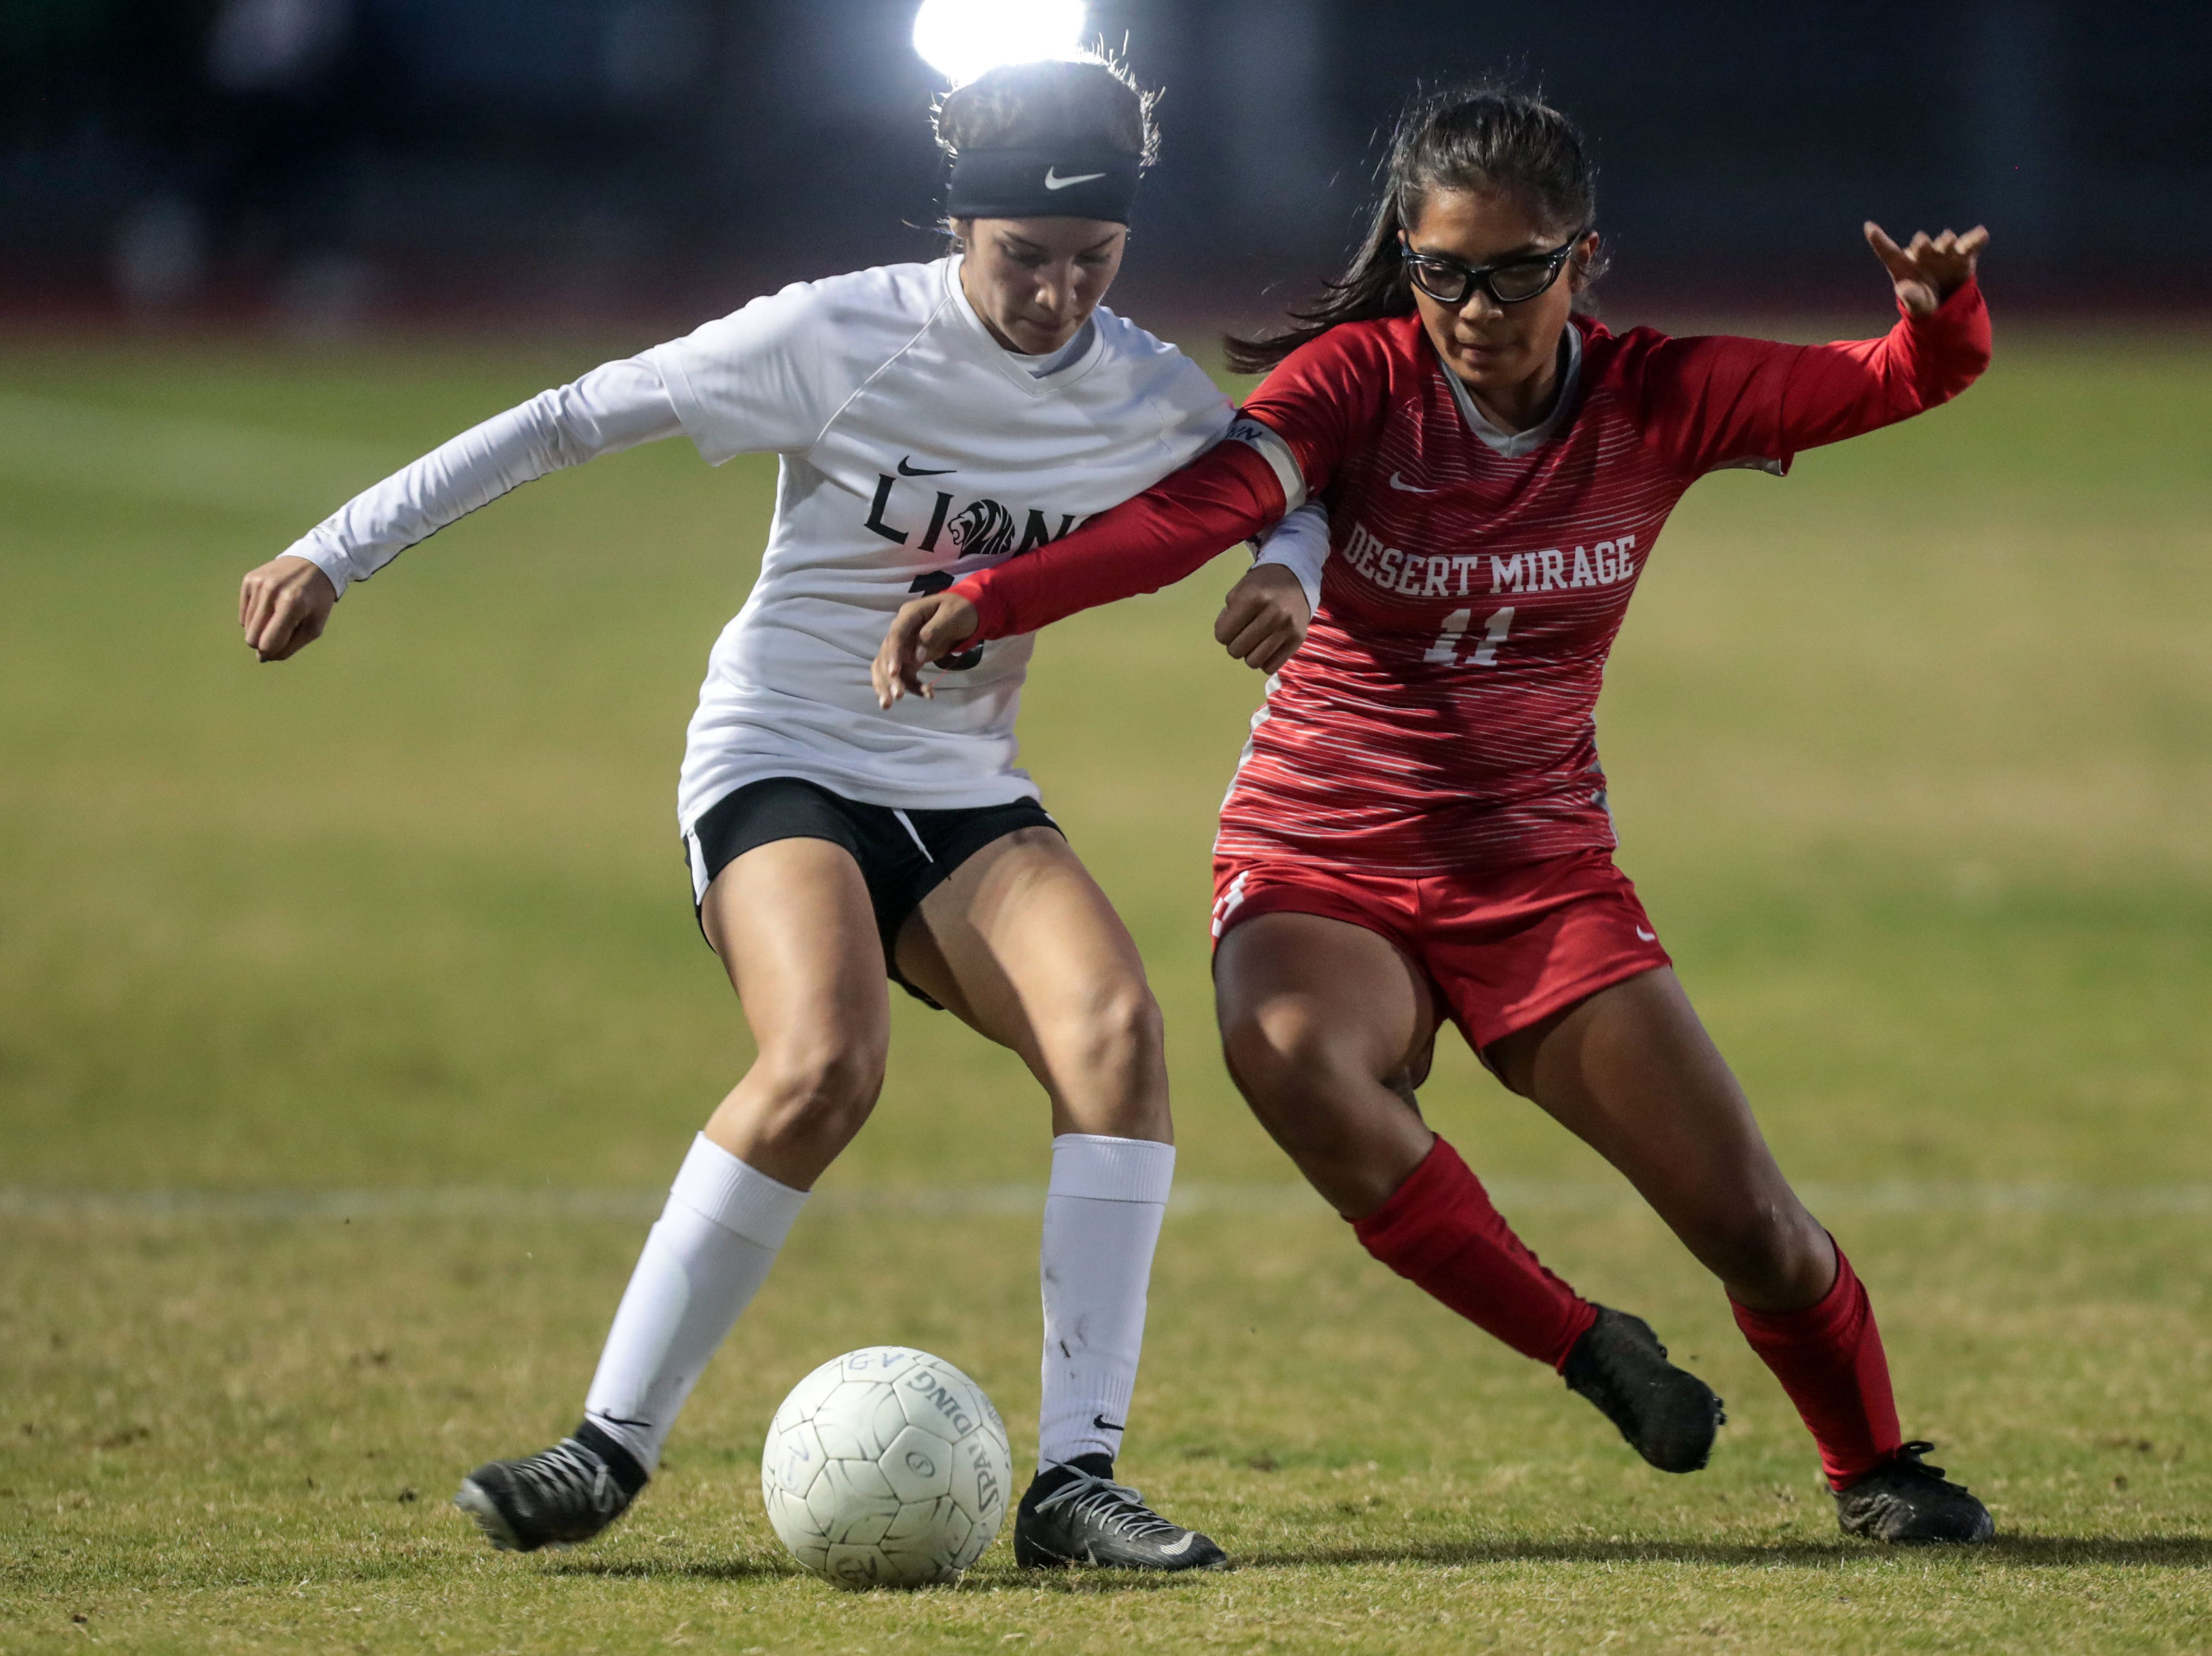 The Lions' Alondra Uribe and the Rams' Anastasia Cruz battle for the ball on Tuesday, January 8, 2018 in Thermal.